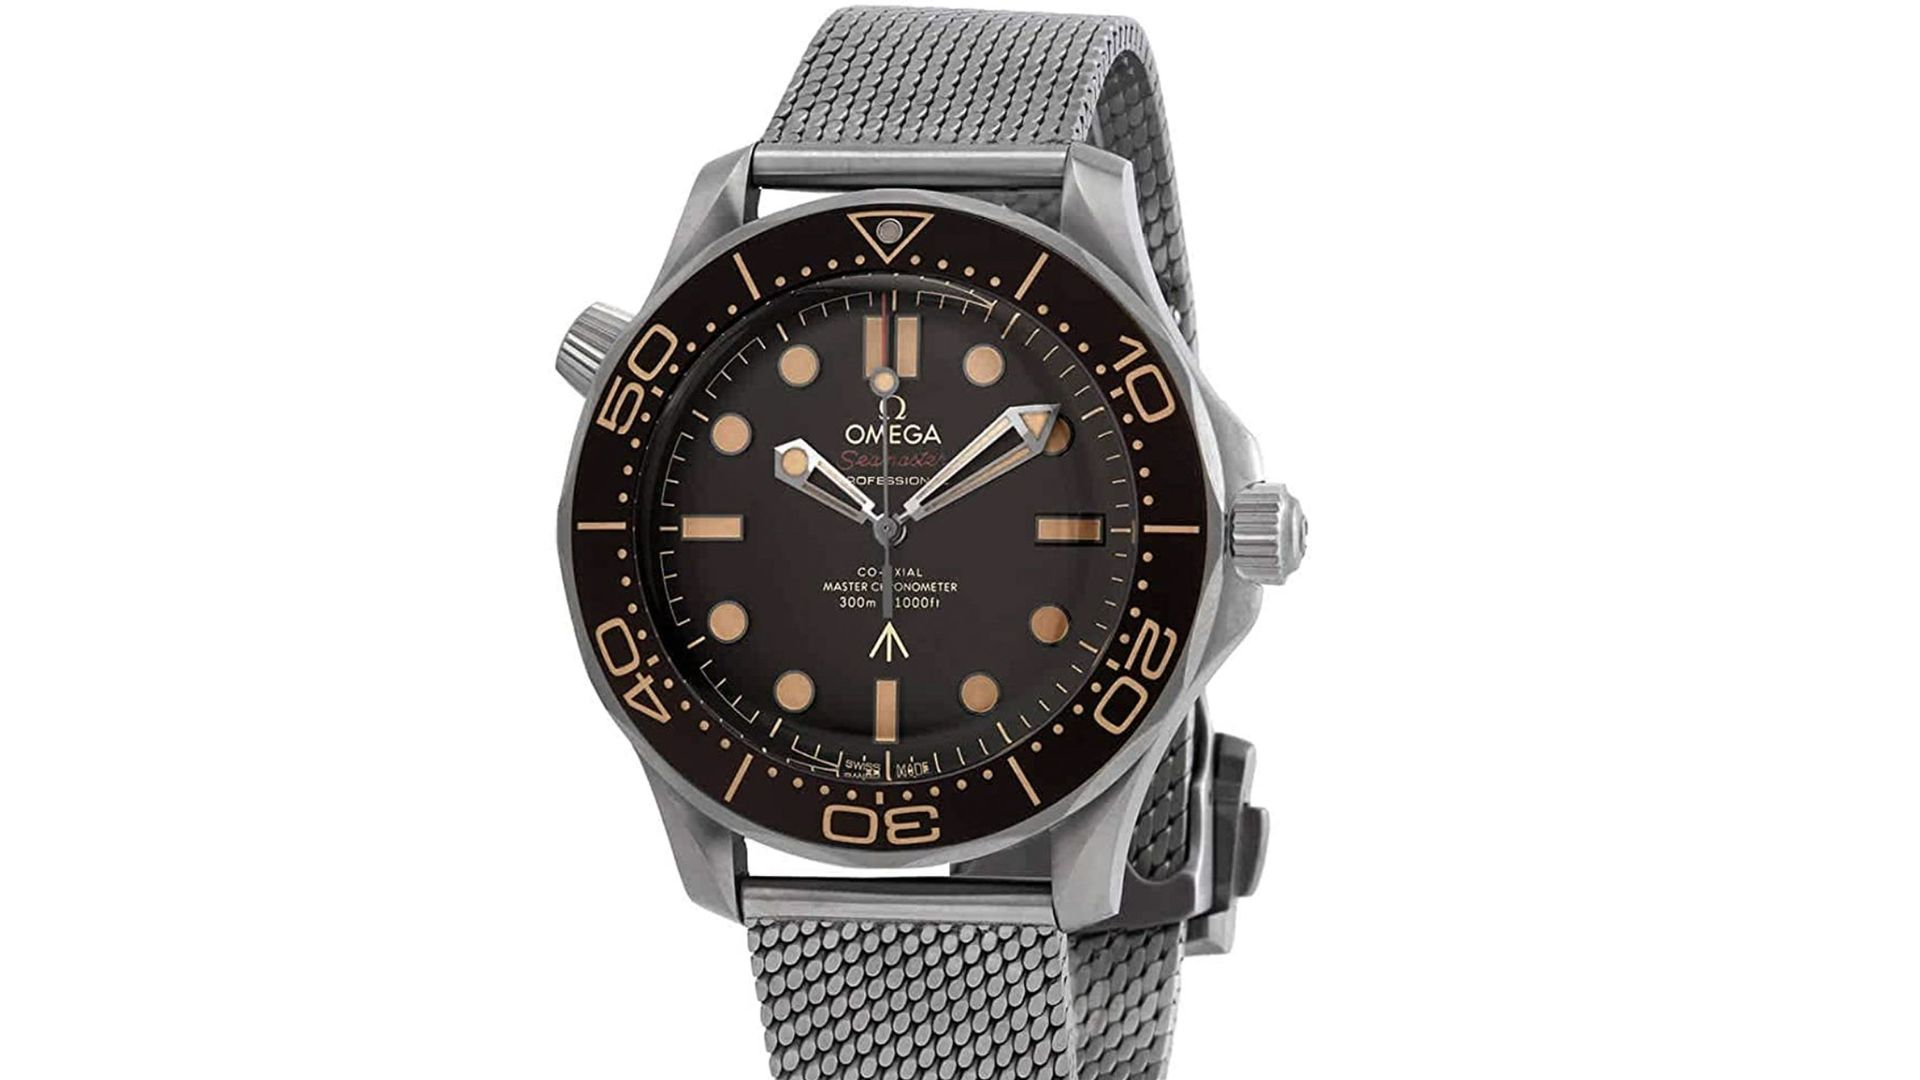 Special Edition 007 Omega Seamaster Men's Watch